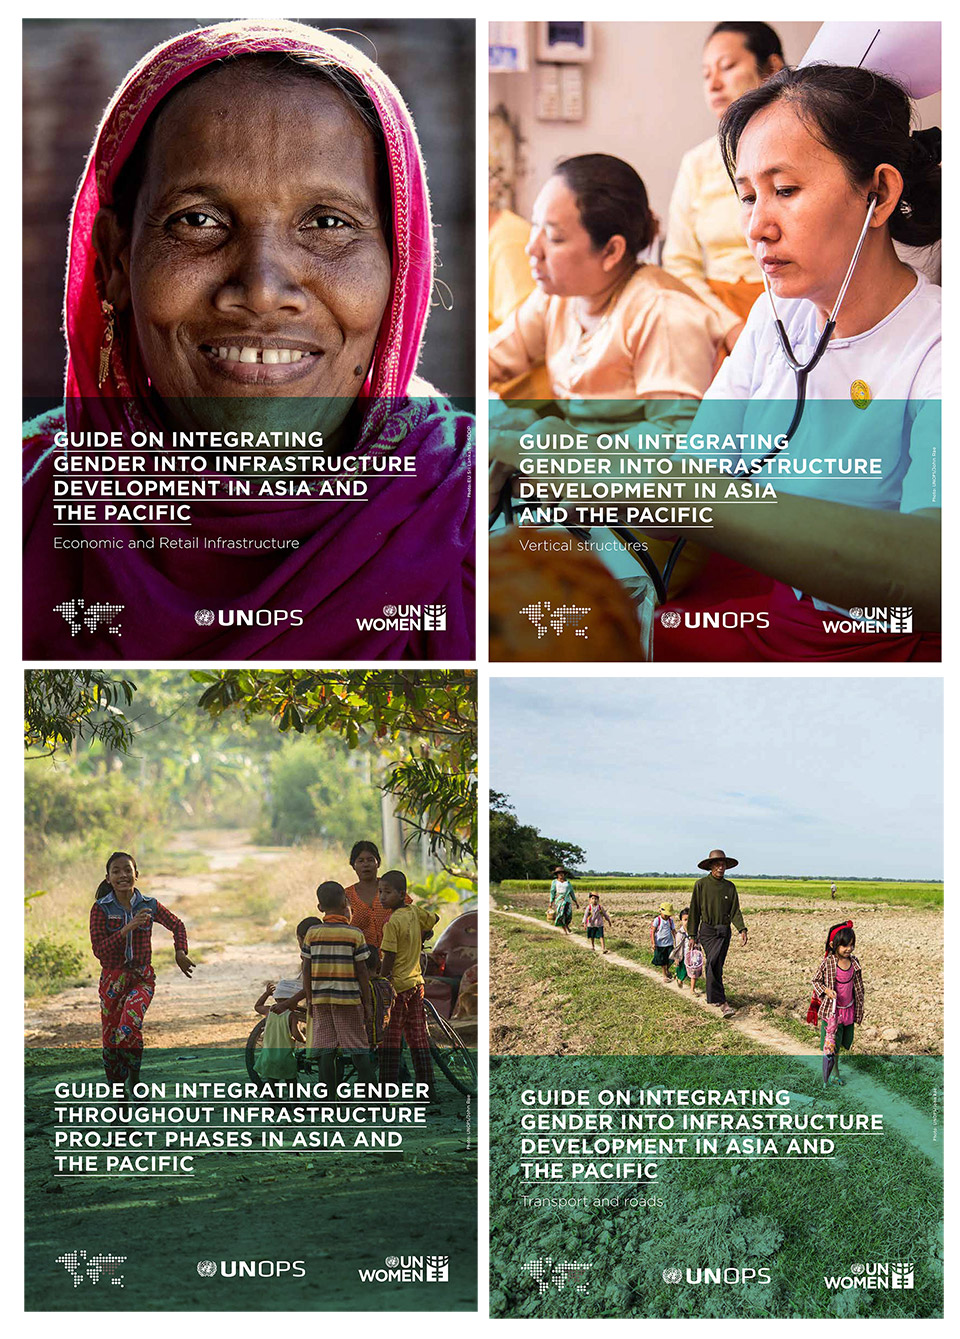 Guides on integrating gender into infrastructure development in Asia and the Pacific